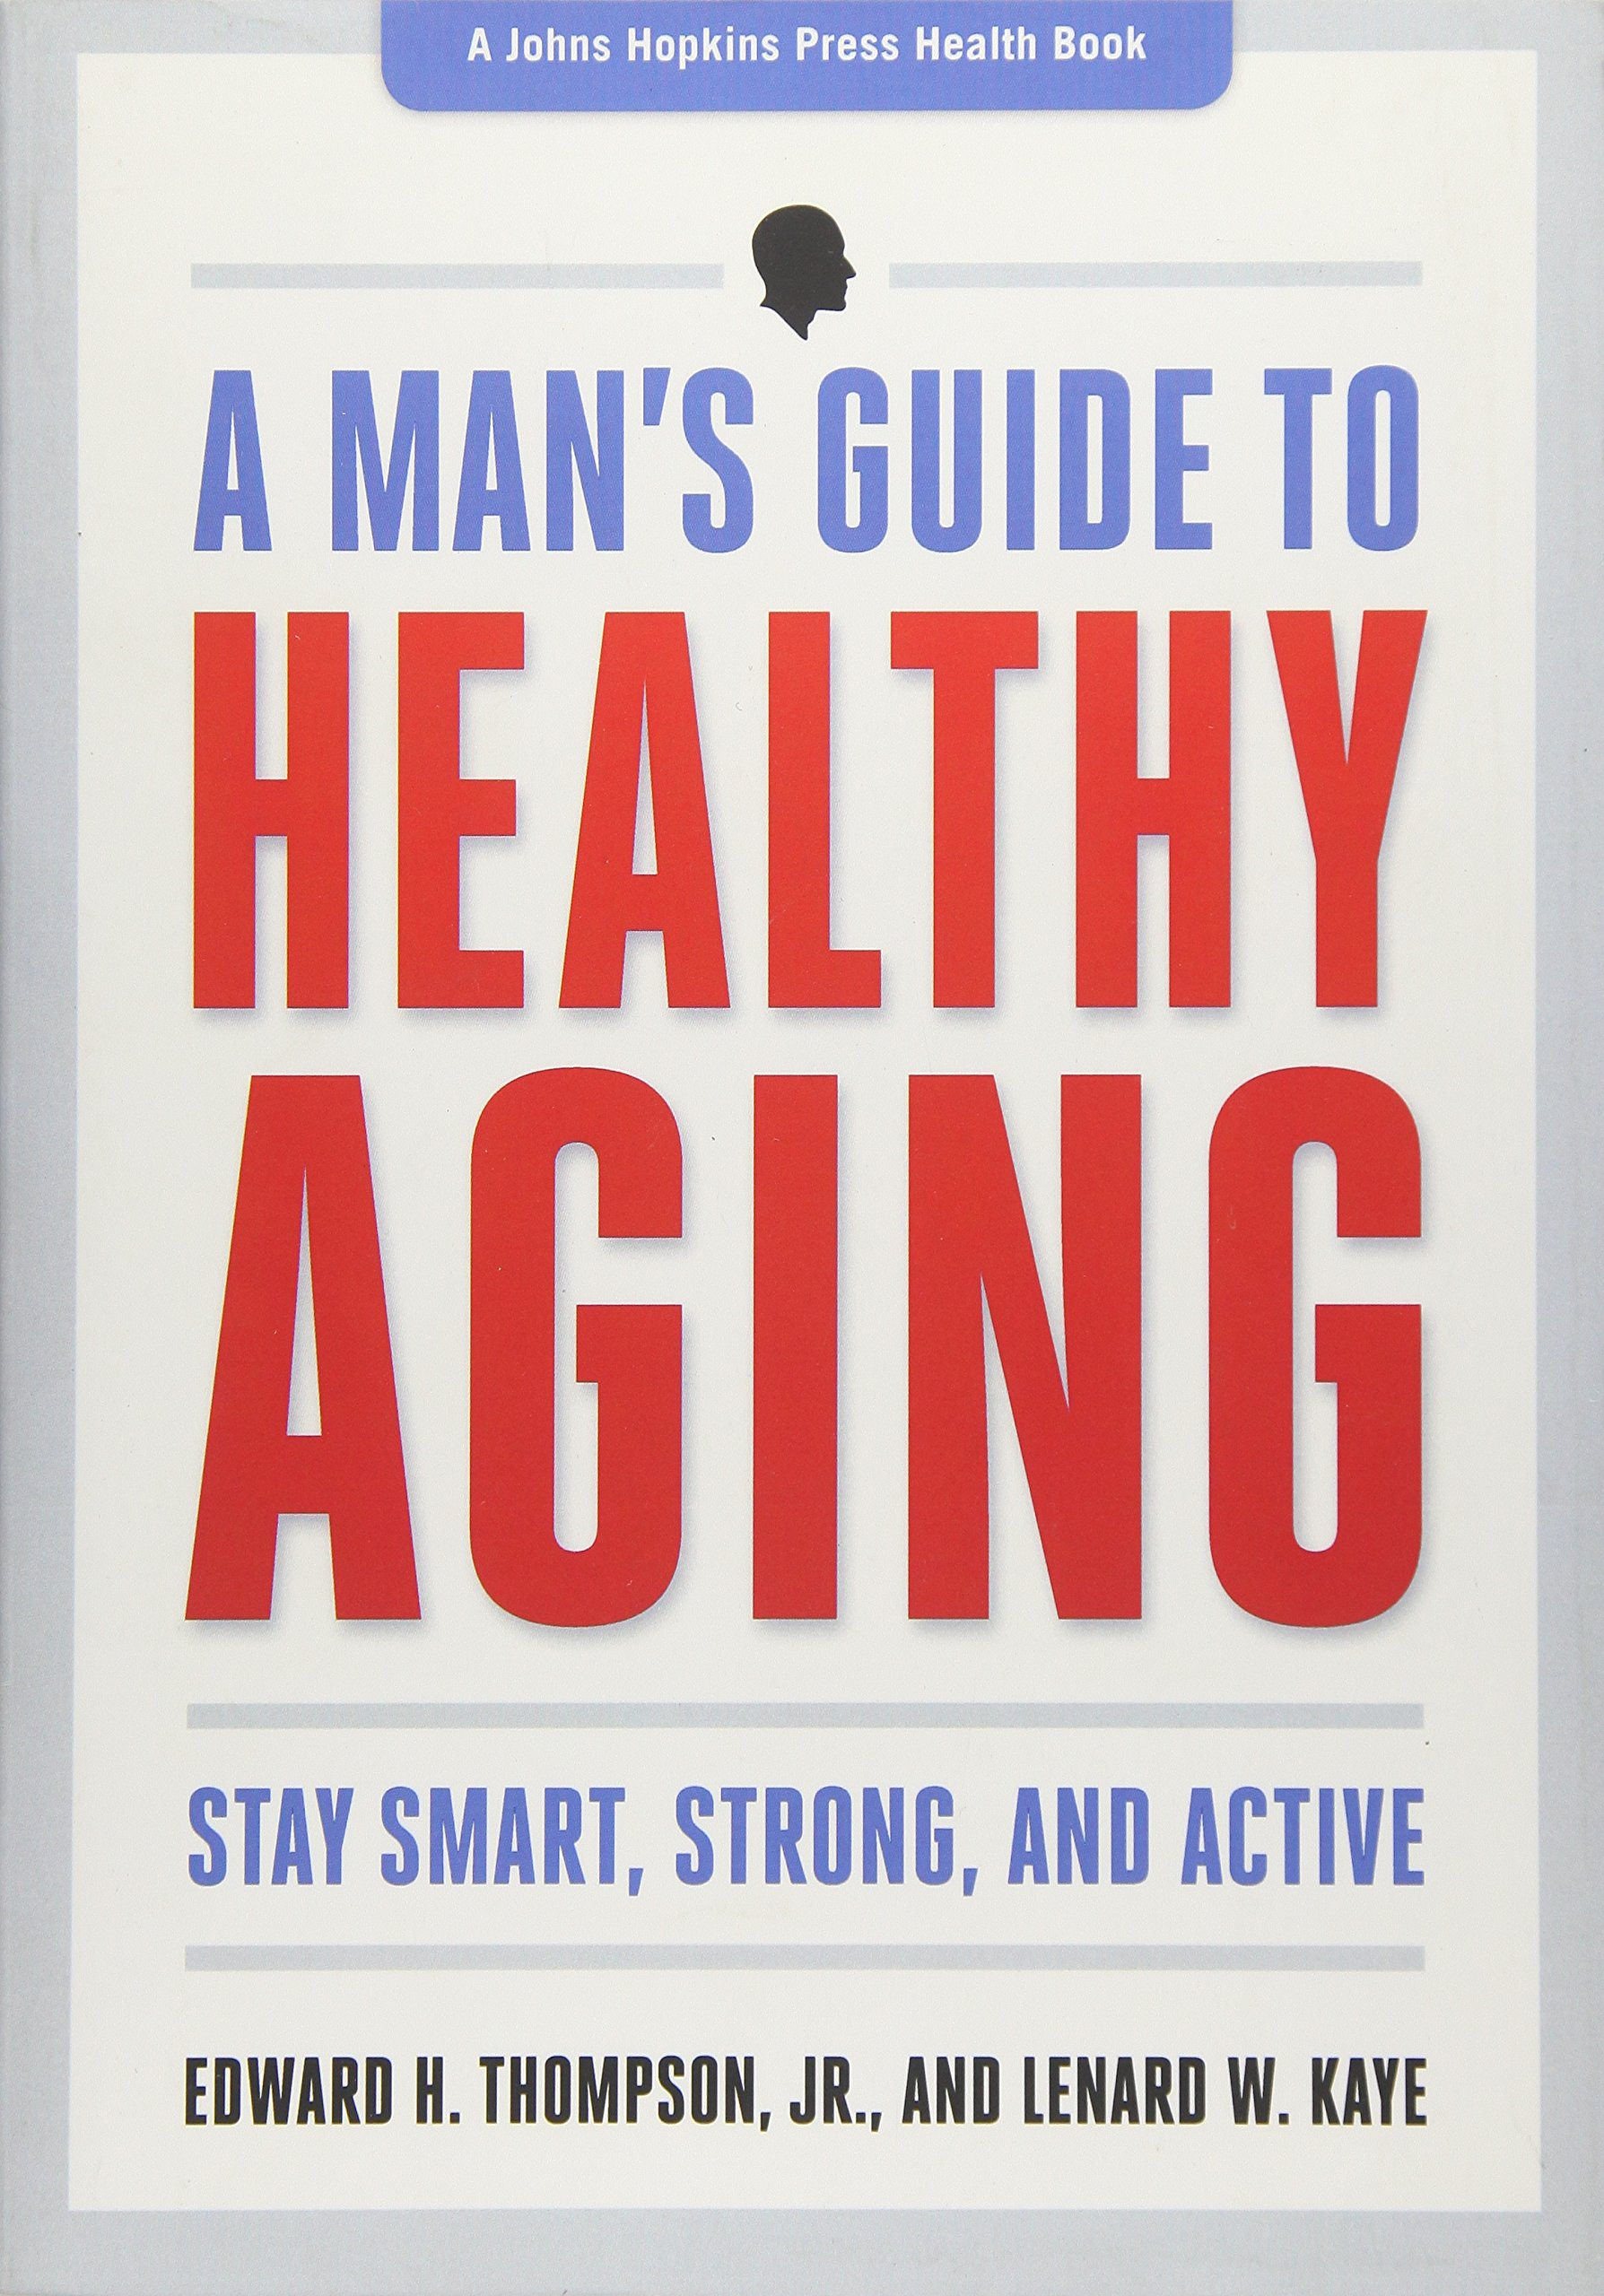 Image OfA Man`s Guide To Healthy Aging – Stay Smart, Strong, And Active